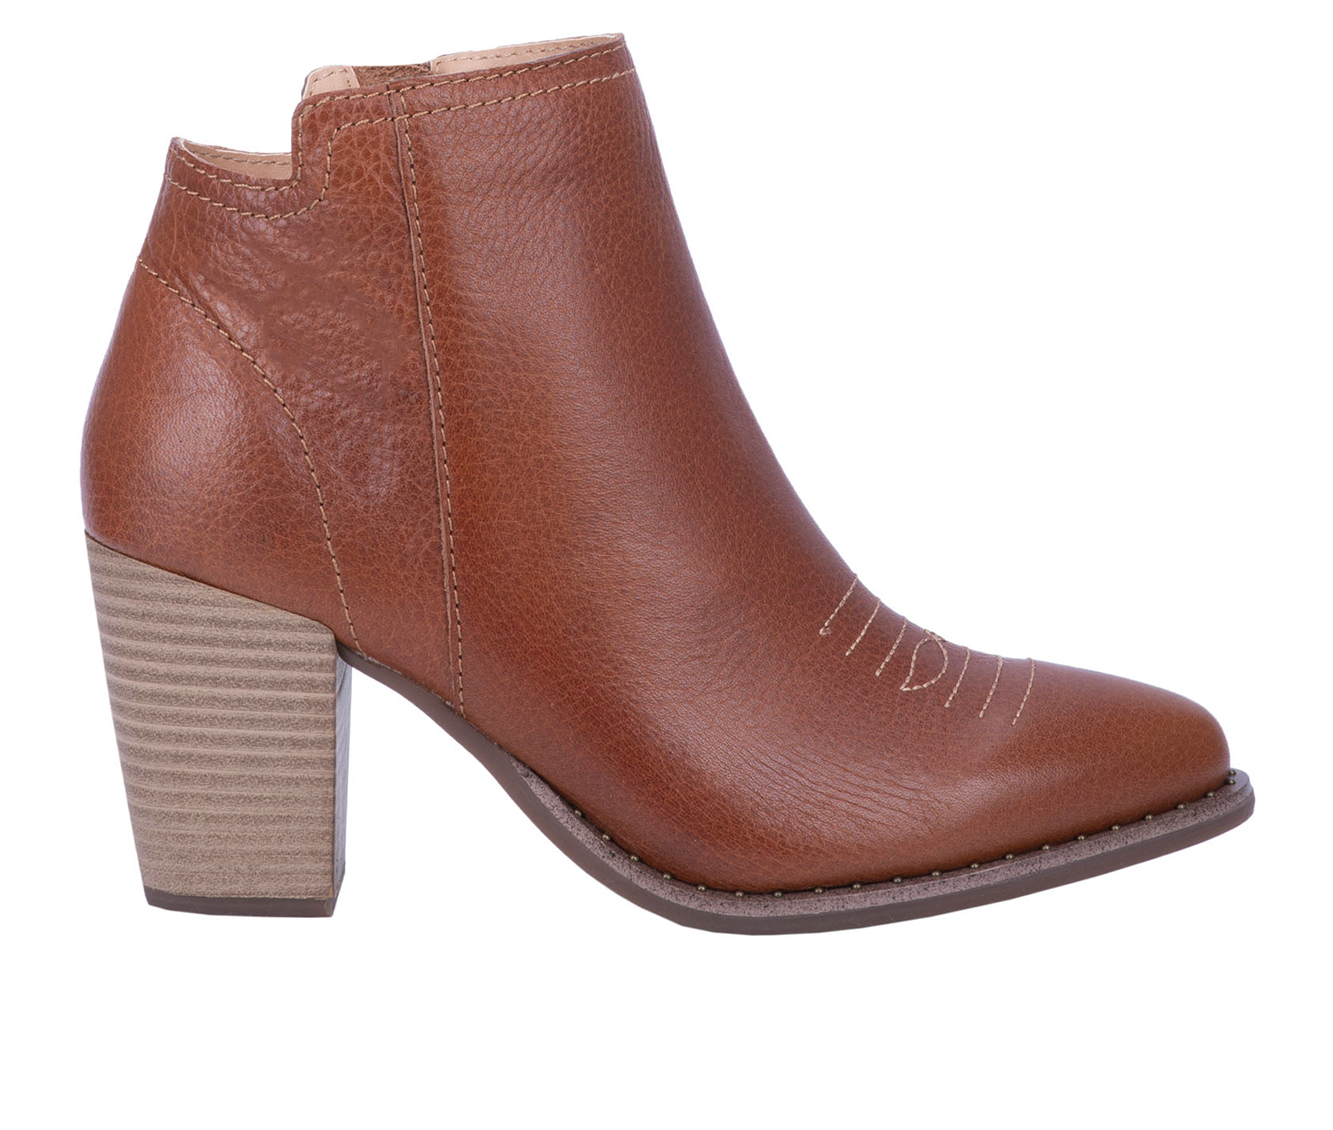 Dingo Boots Call Back Women's Boots (Brown - Leather)